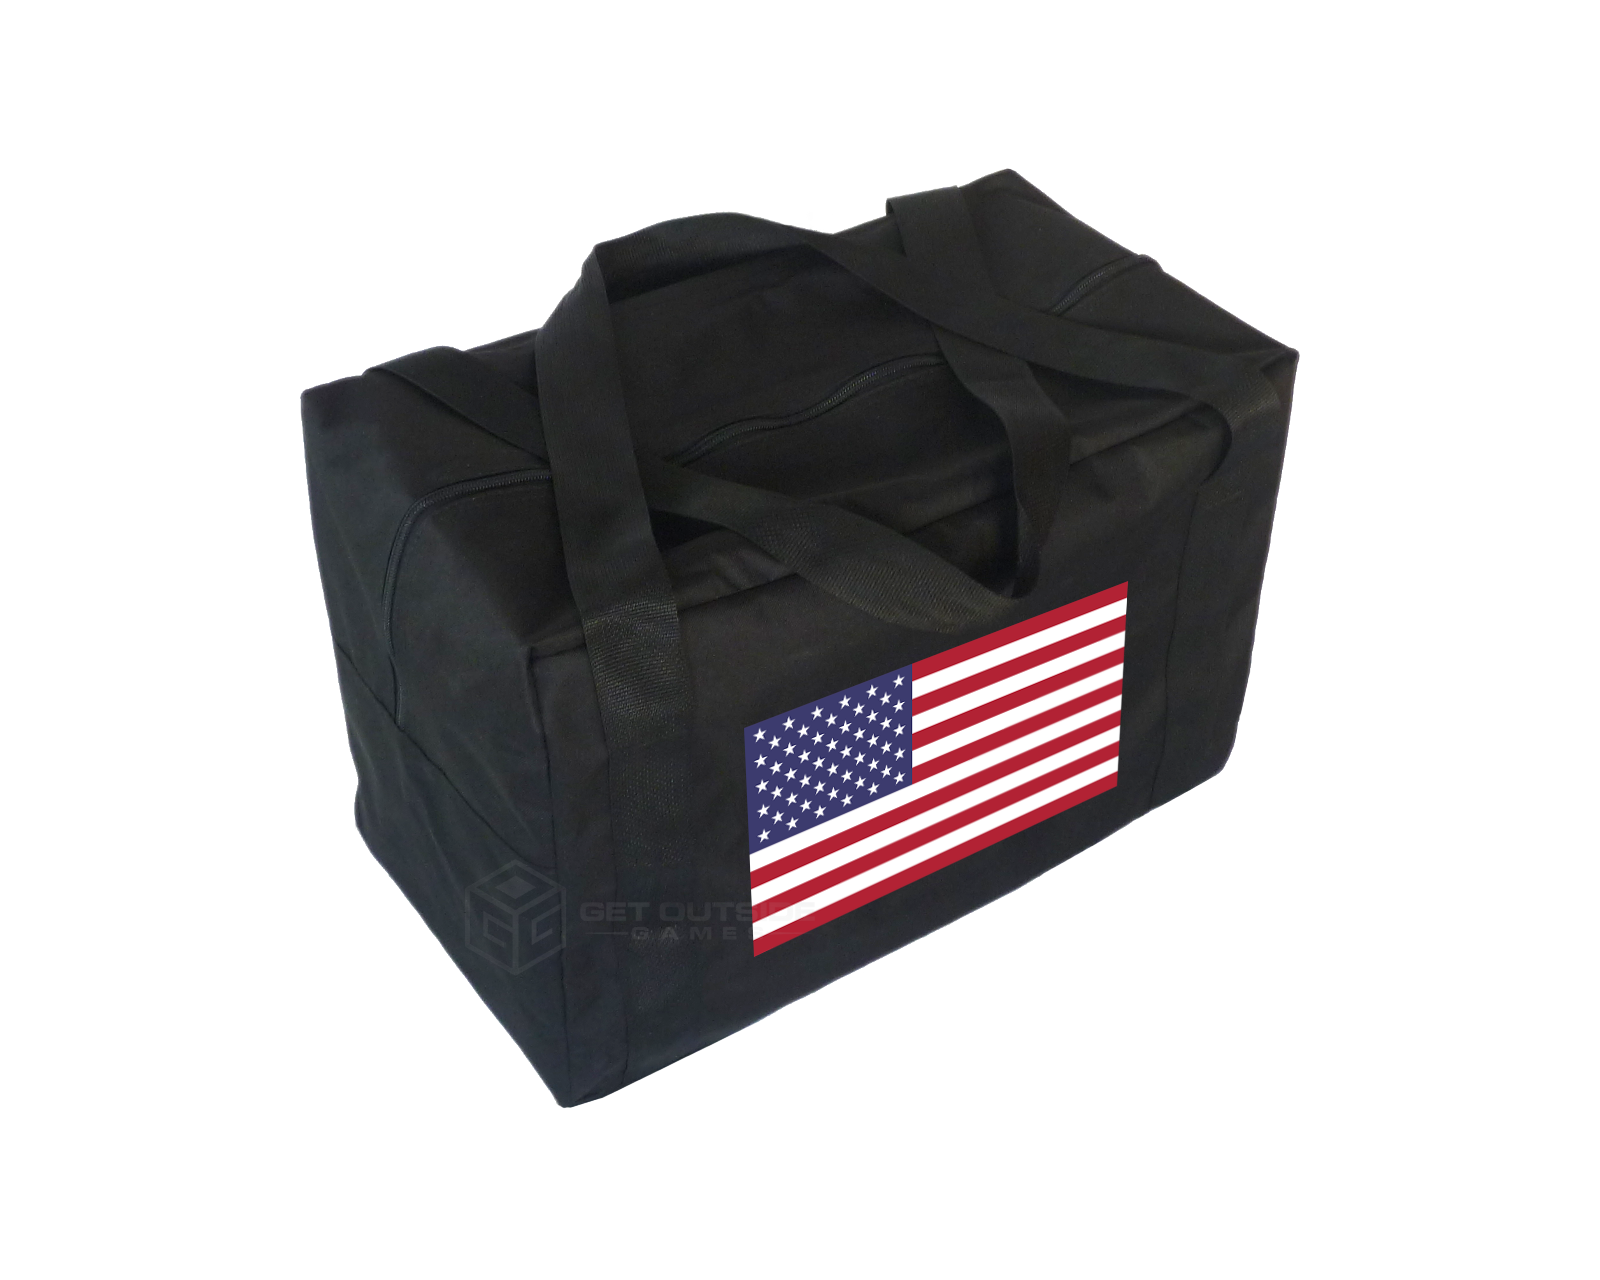 United States Flag Carry Case & Storage Bag for Giant Tumble Tower Block Games